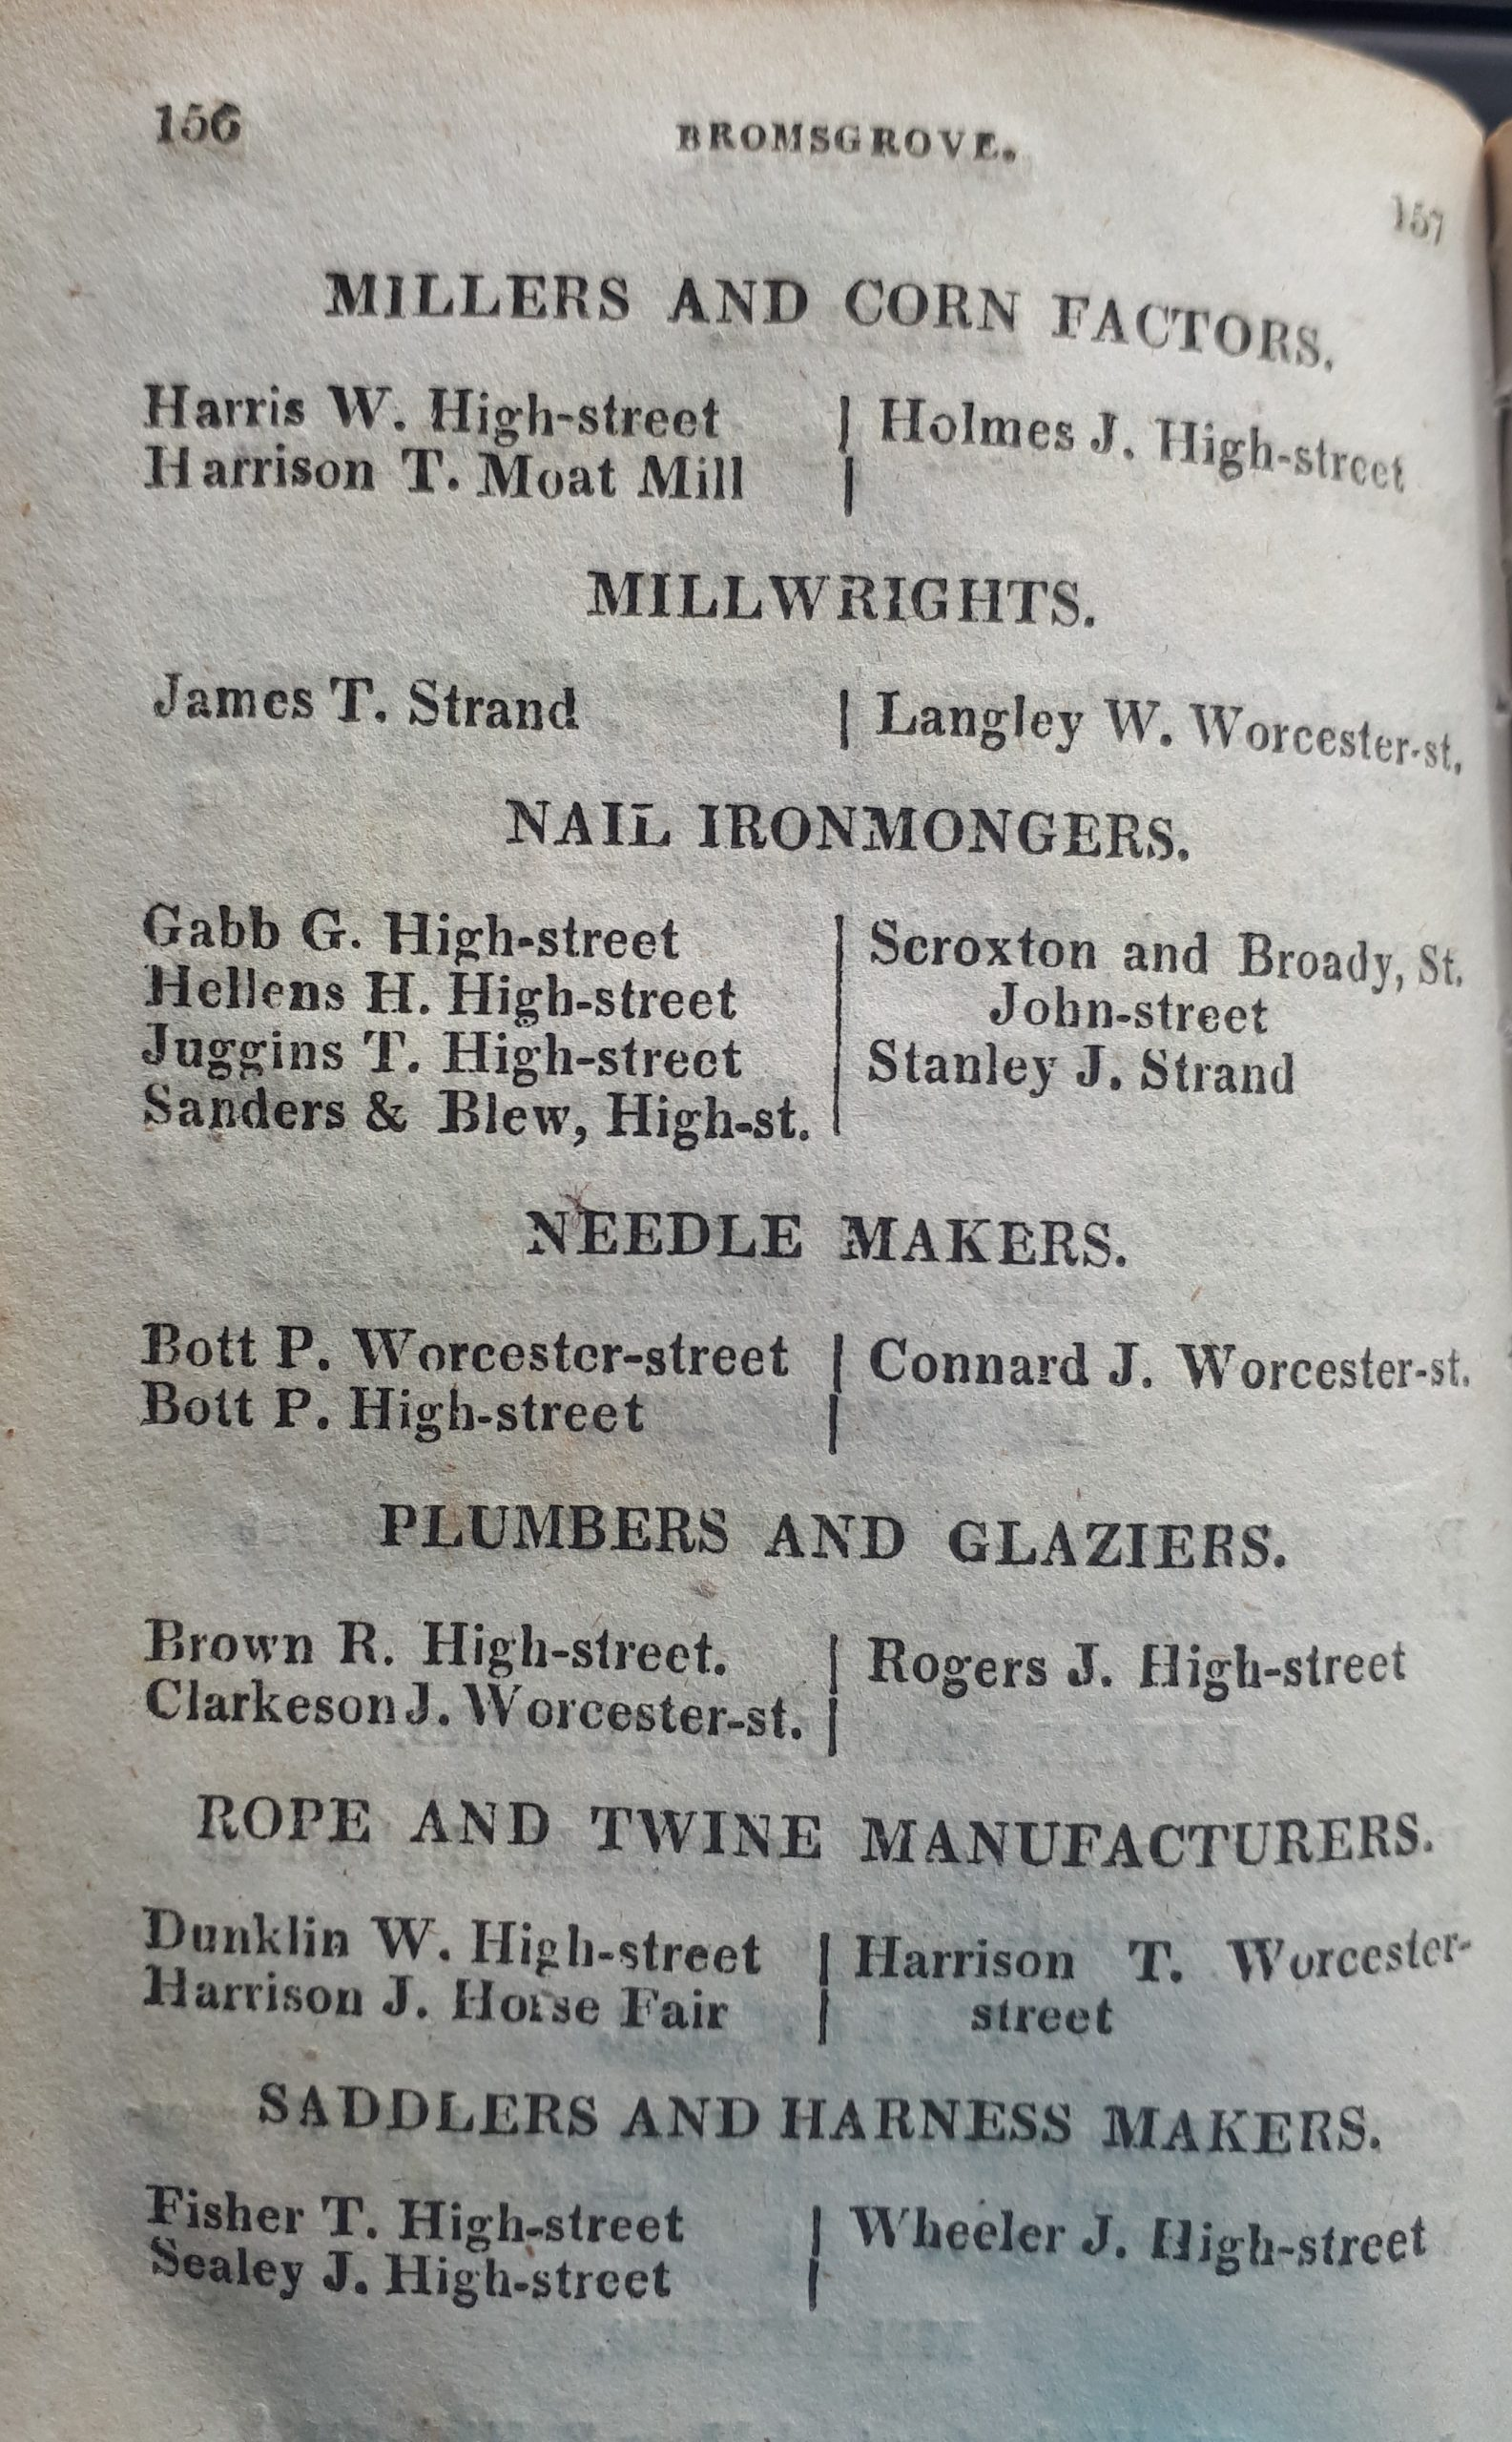 Examples of Bromsgrove Trades in Lewis, S. Worcestershire General & Commercial Directory, 1820